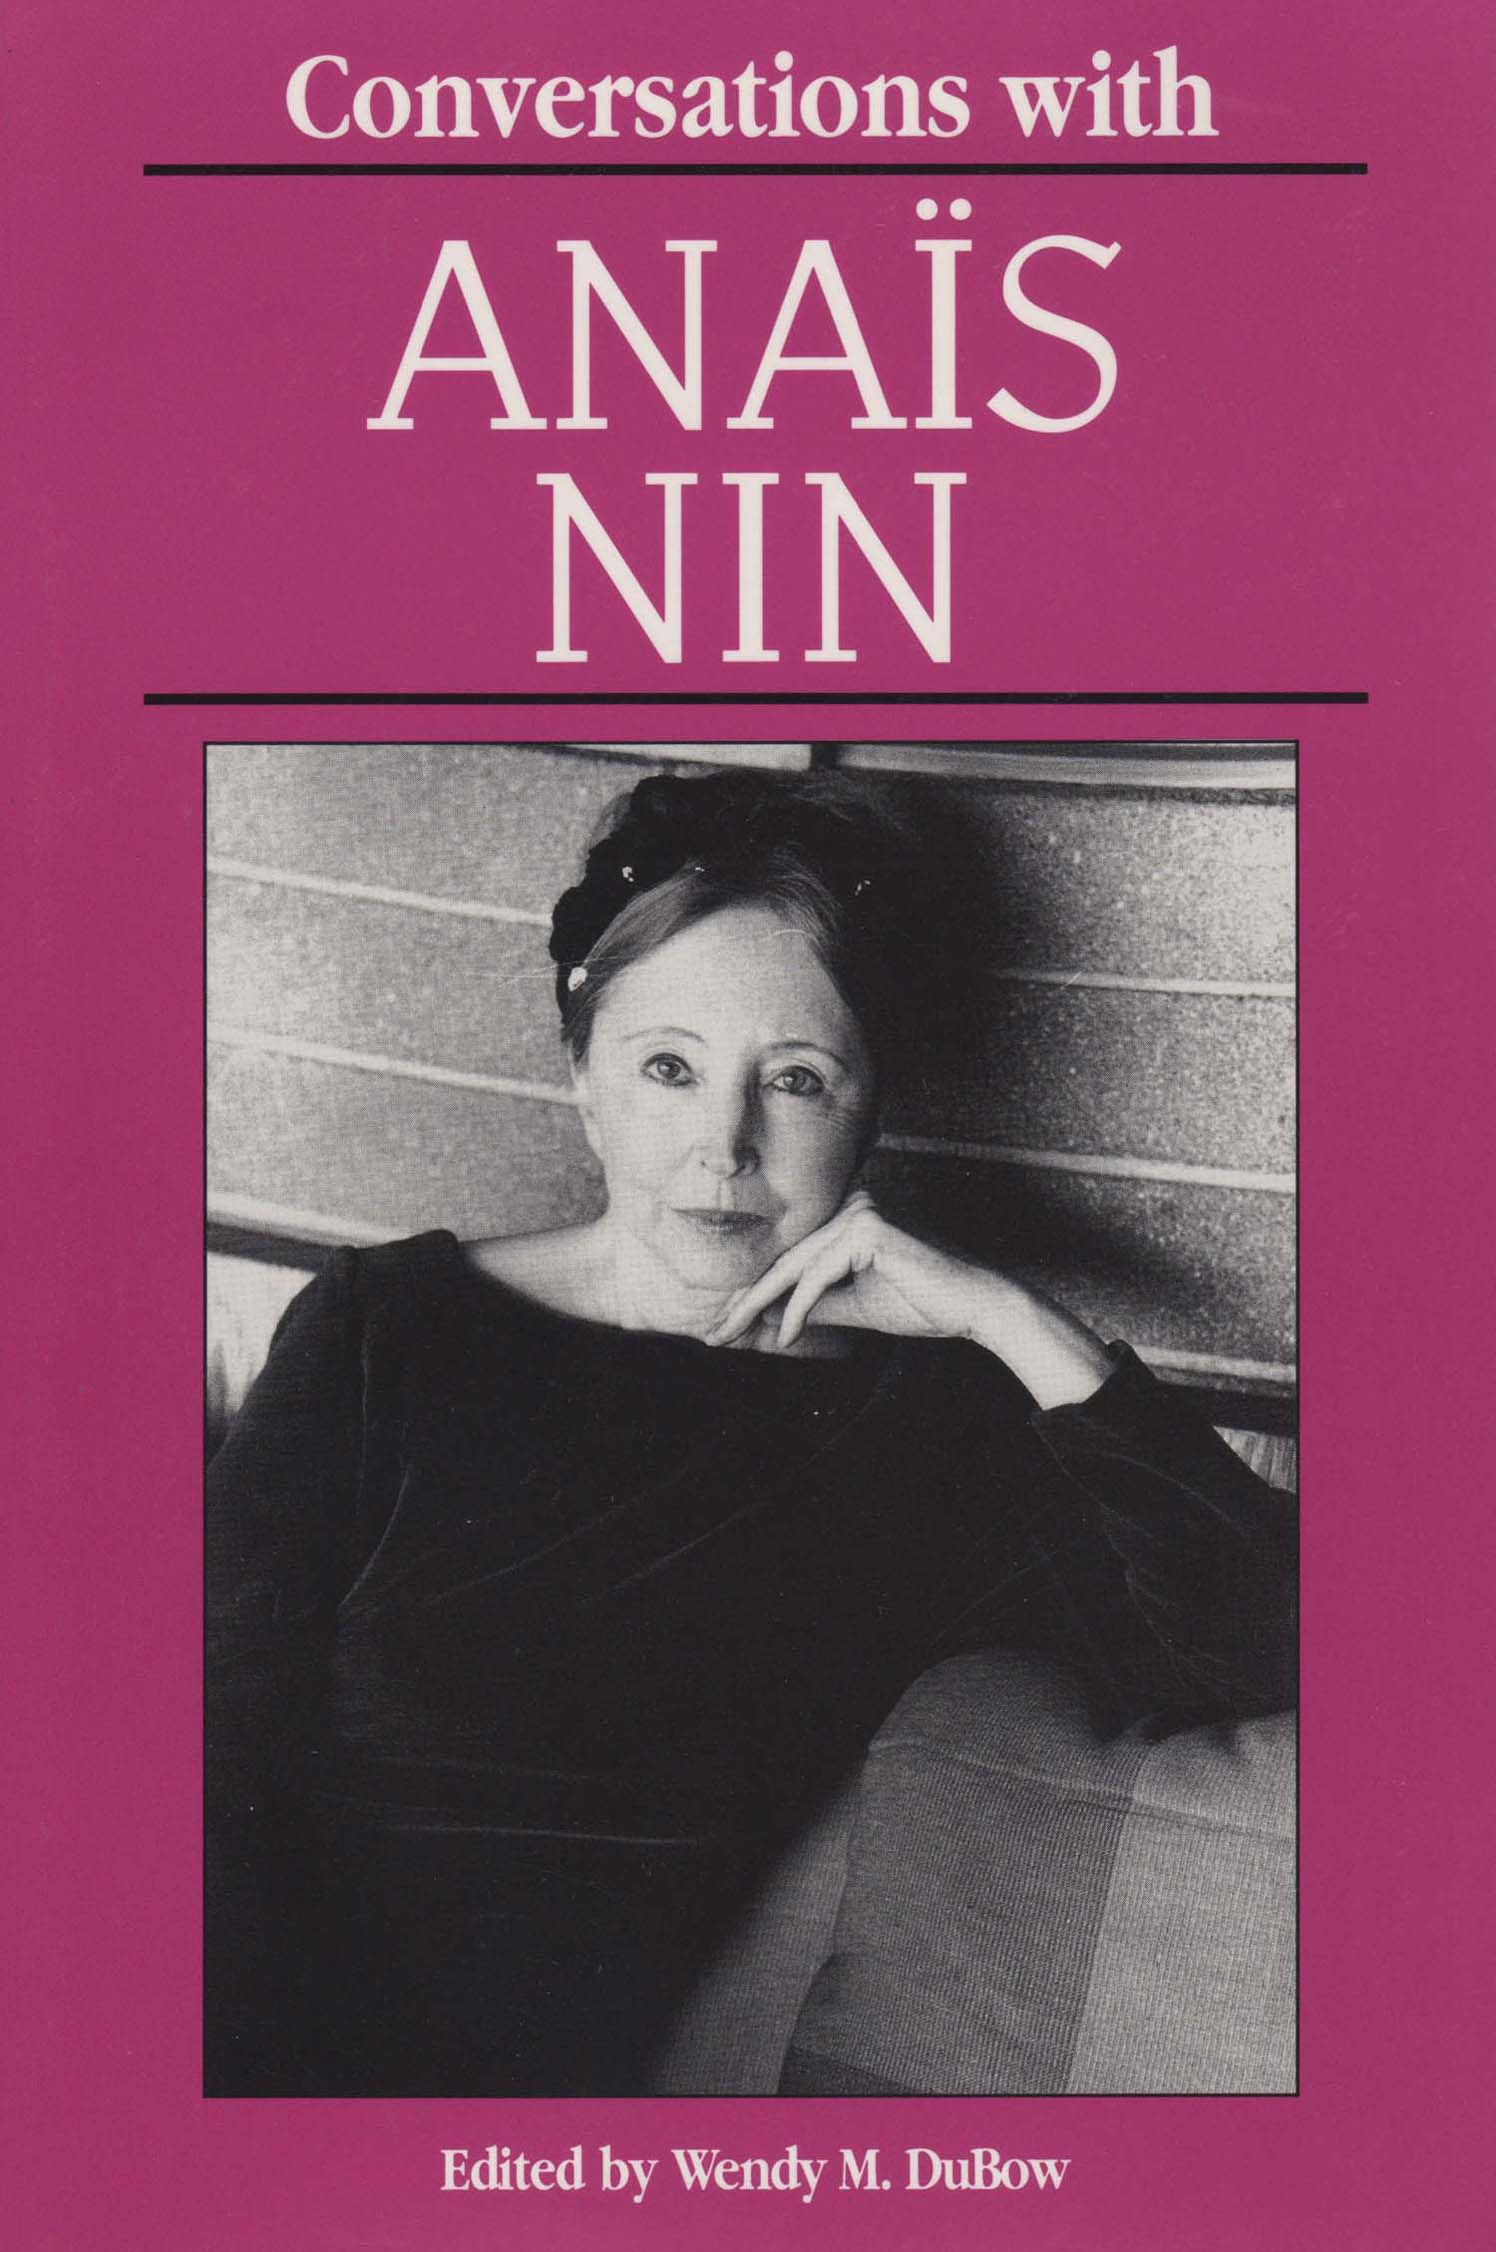 Conversations with Anais Nin